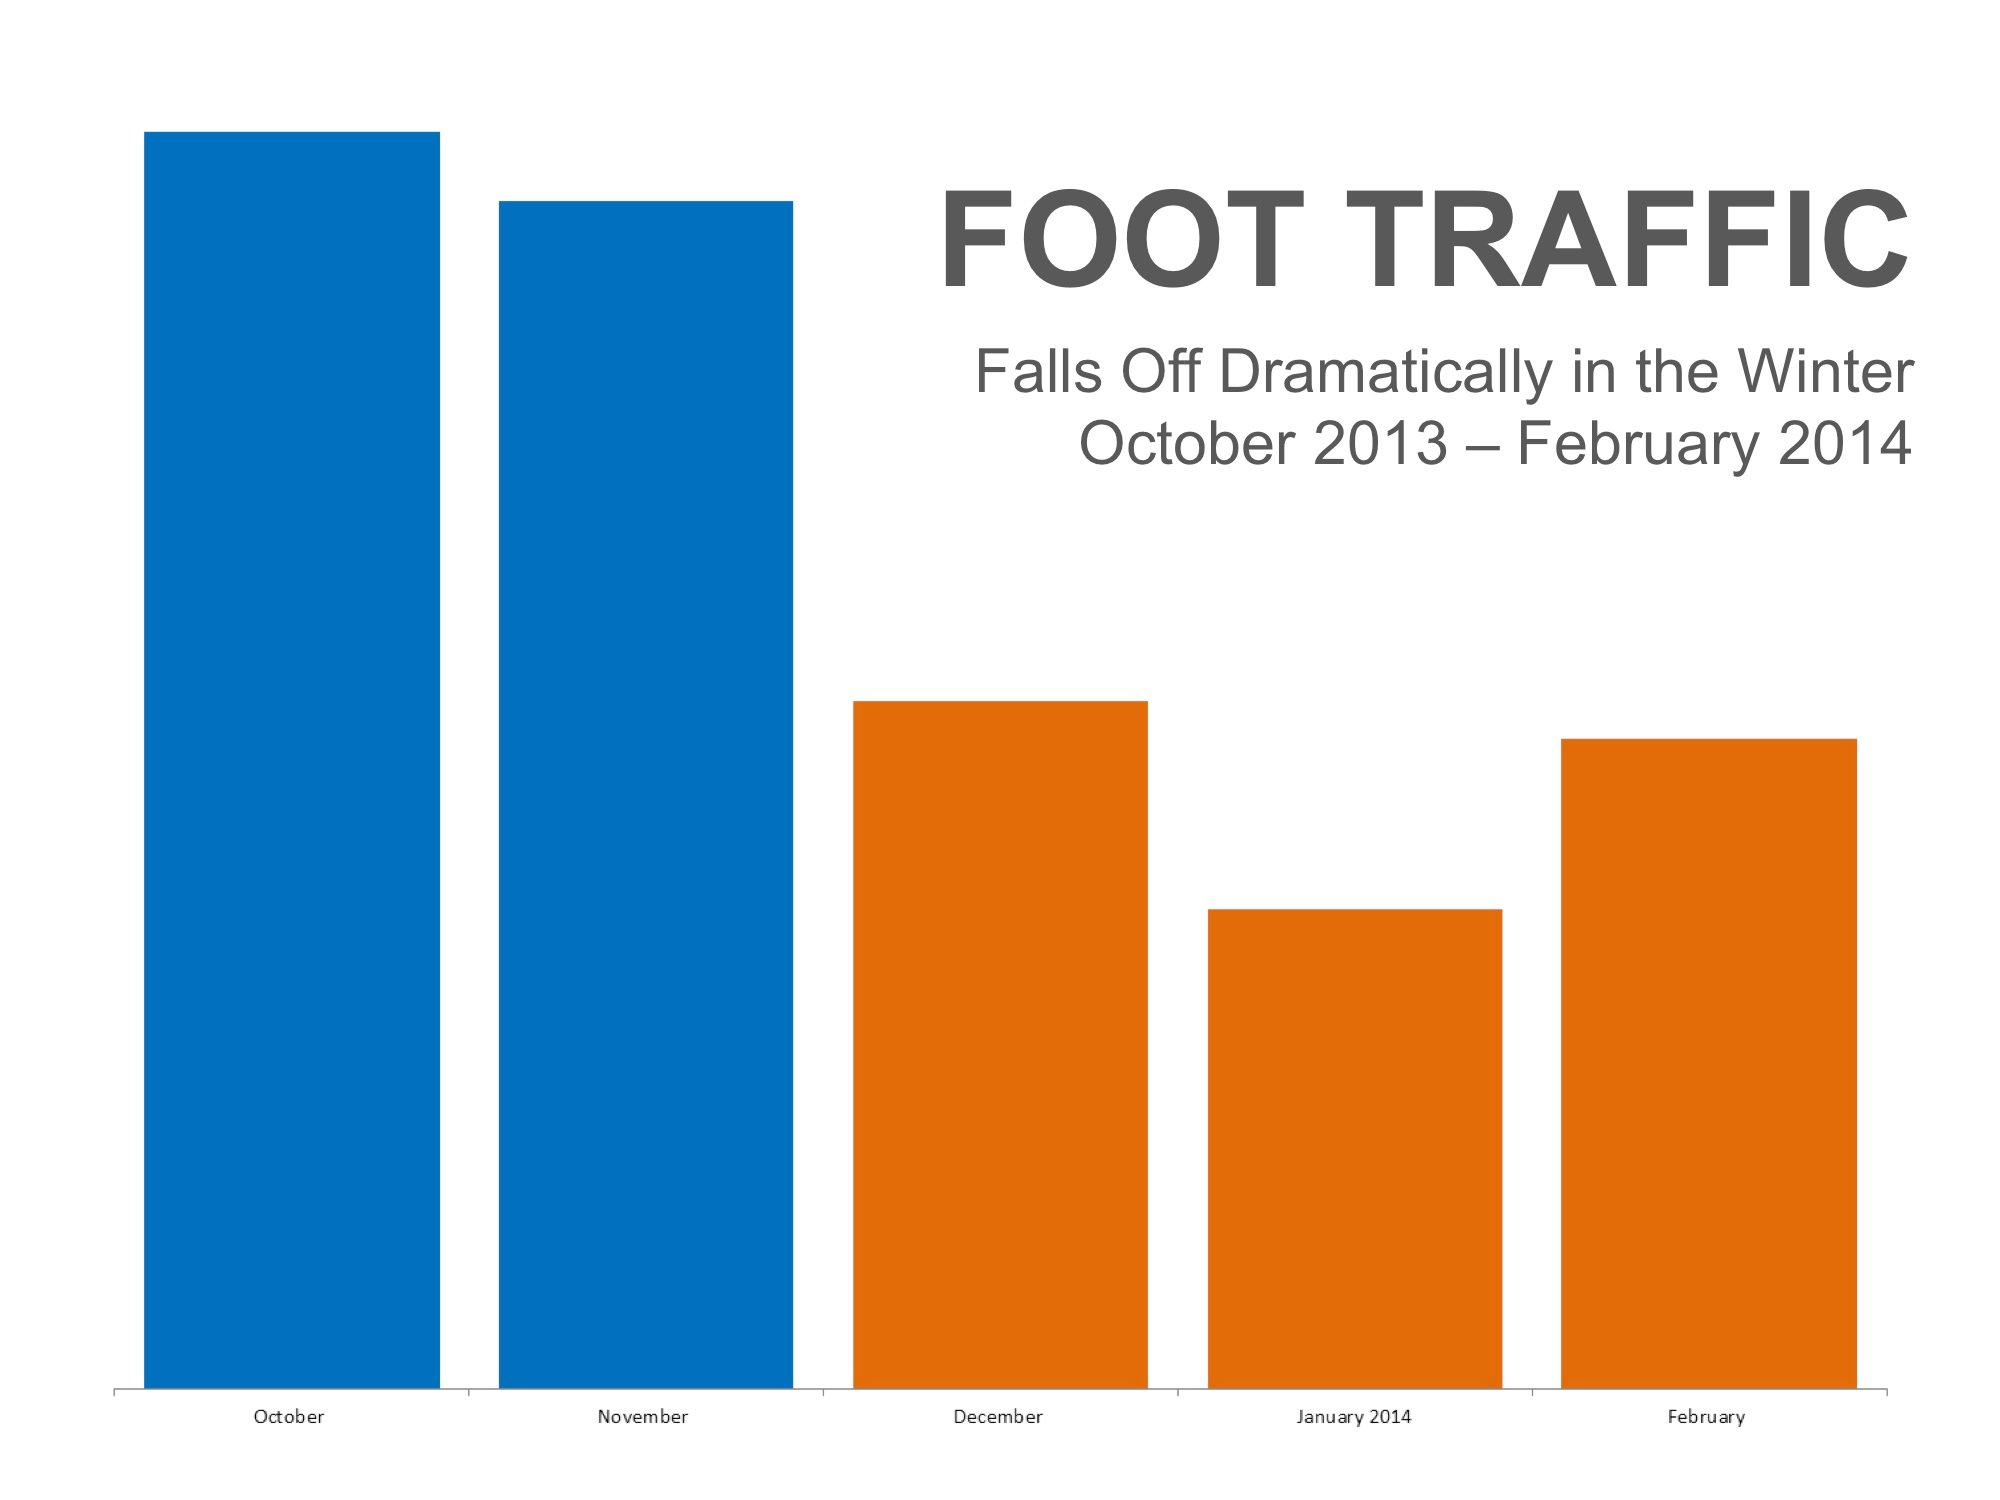 Foot Traffic to Decline in Winter Months  Keeping Current Matters